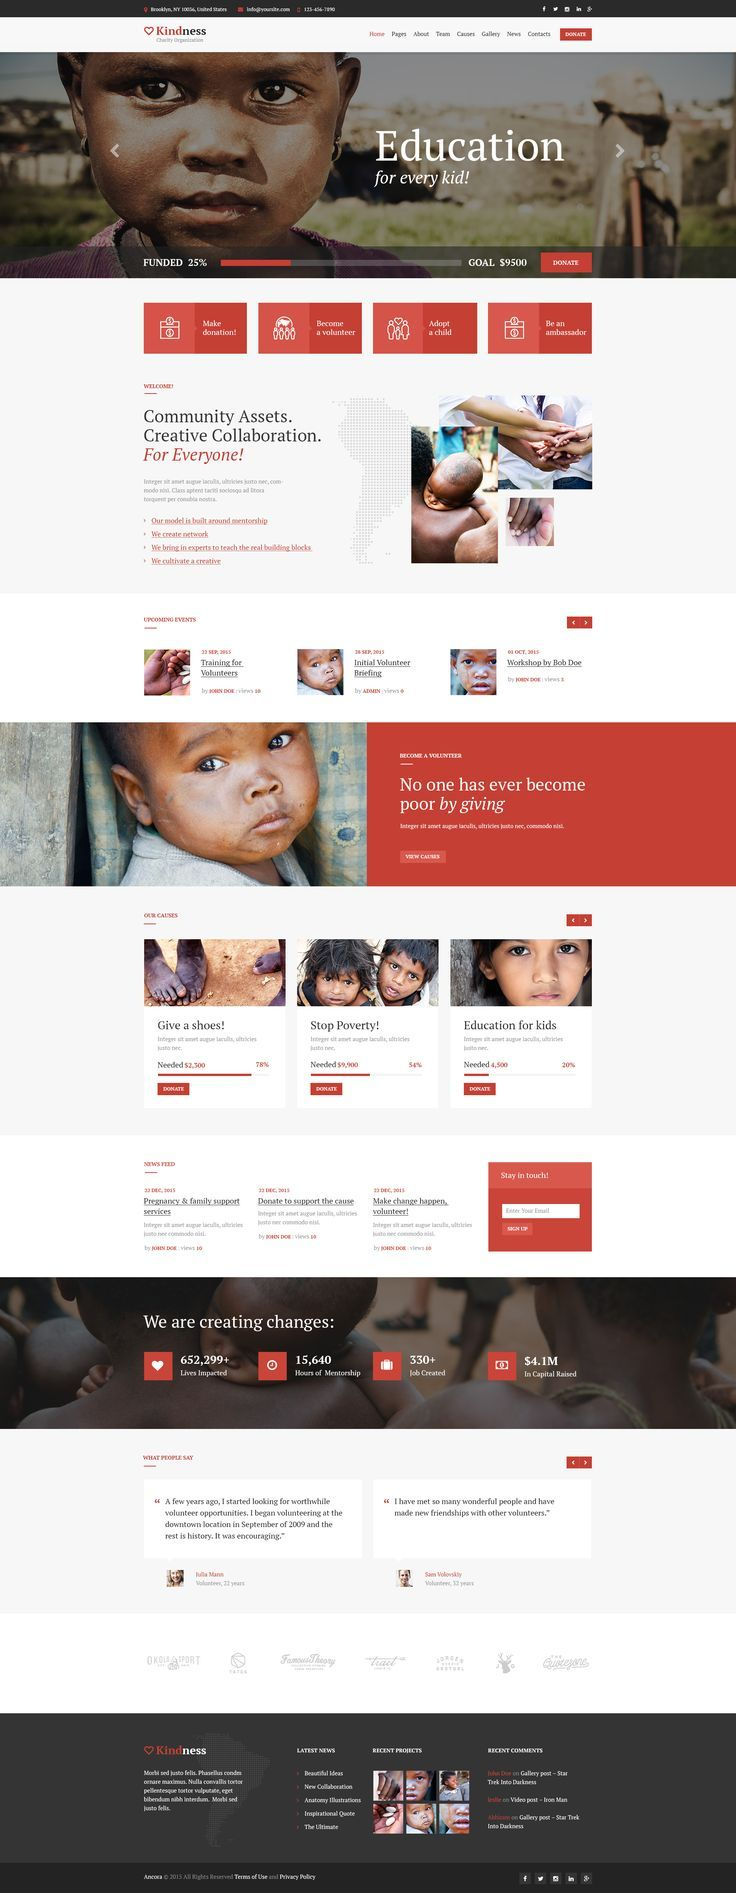 Kindness Wordpress Theme Has Modern And Functional Design Perfectly Suitable For Word Nonprofit Website Design Wordpress Website Design Agency Website Design